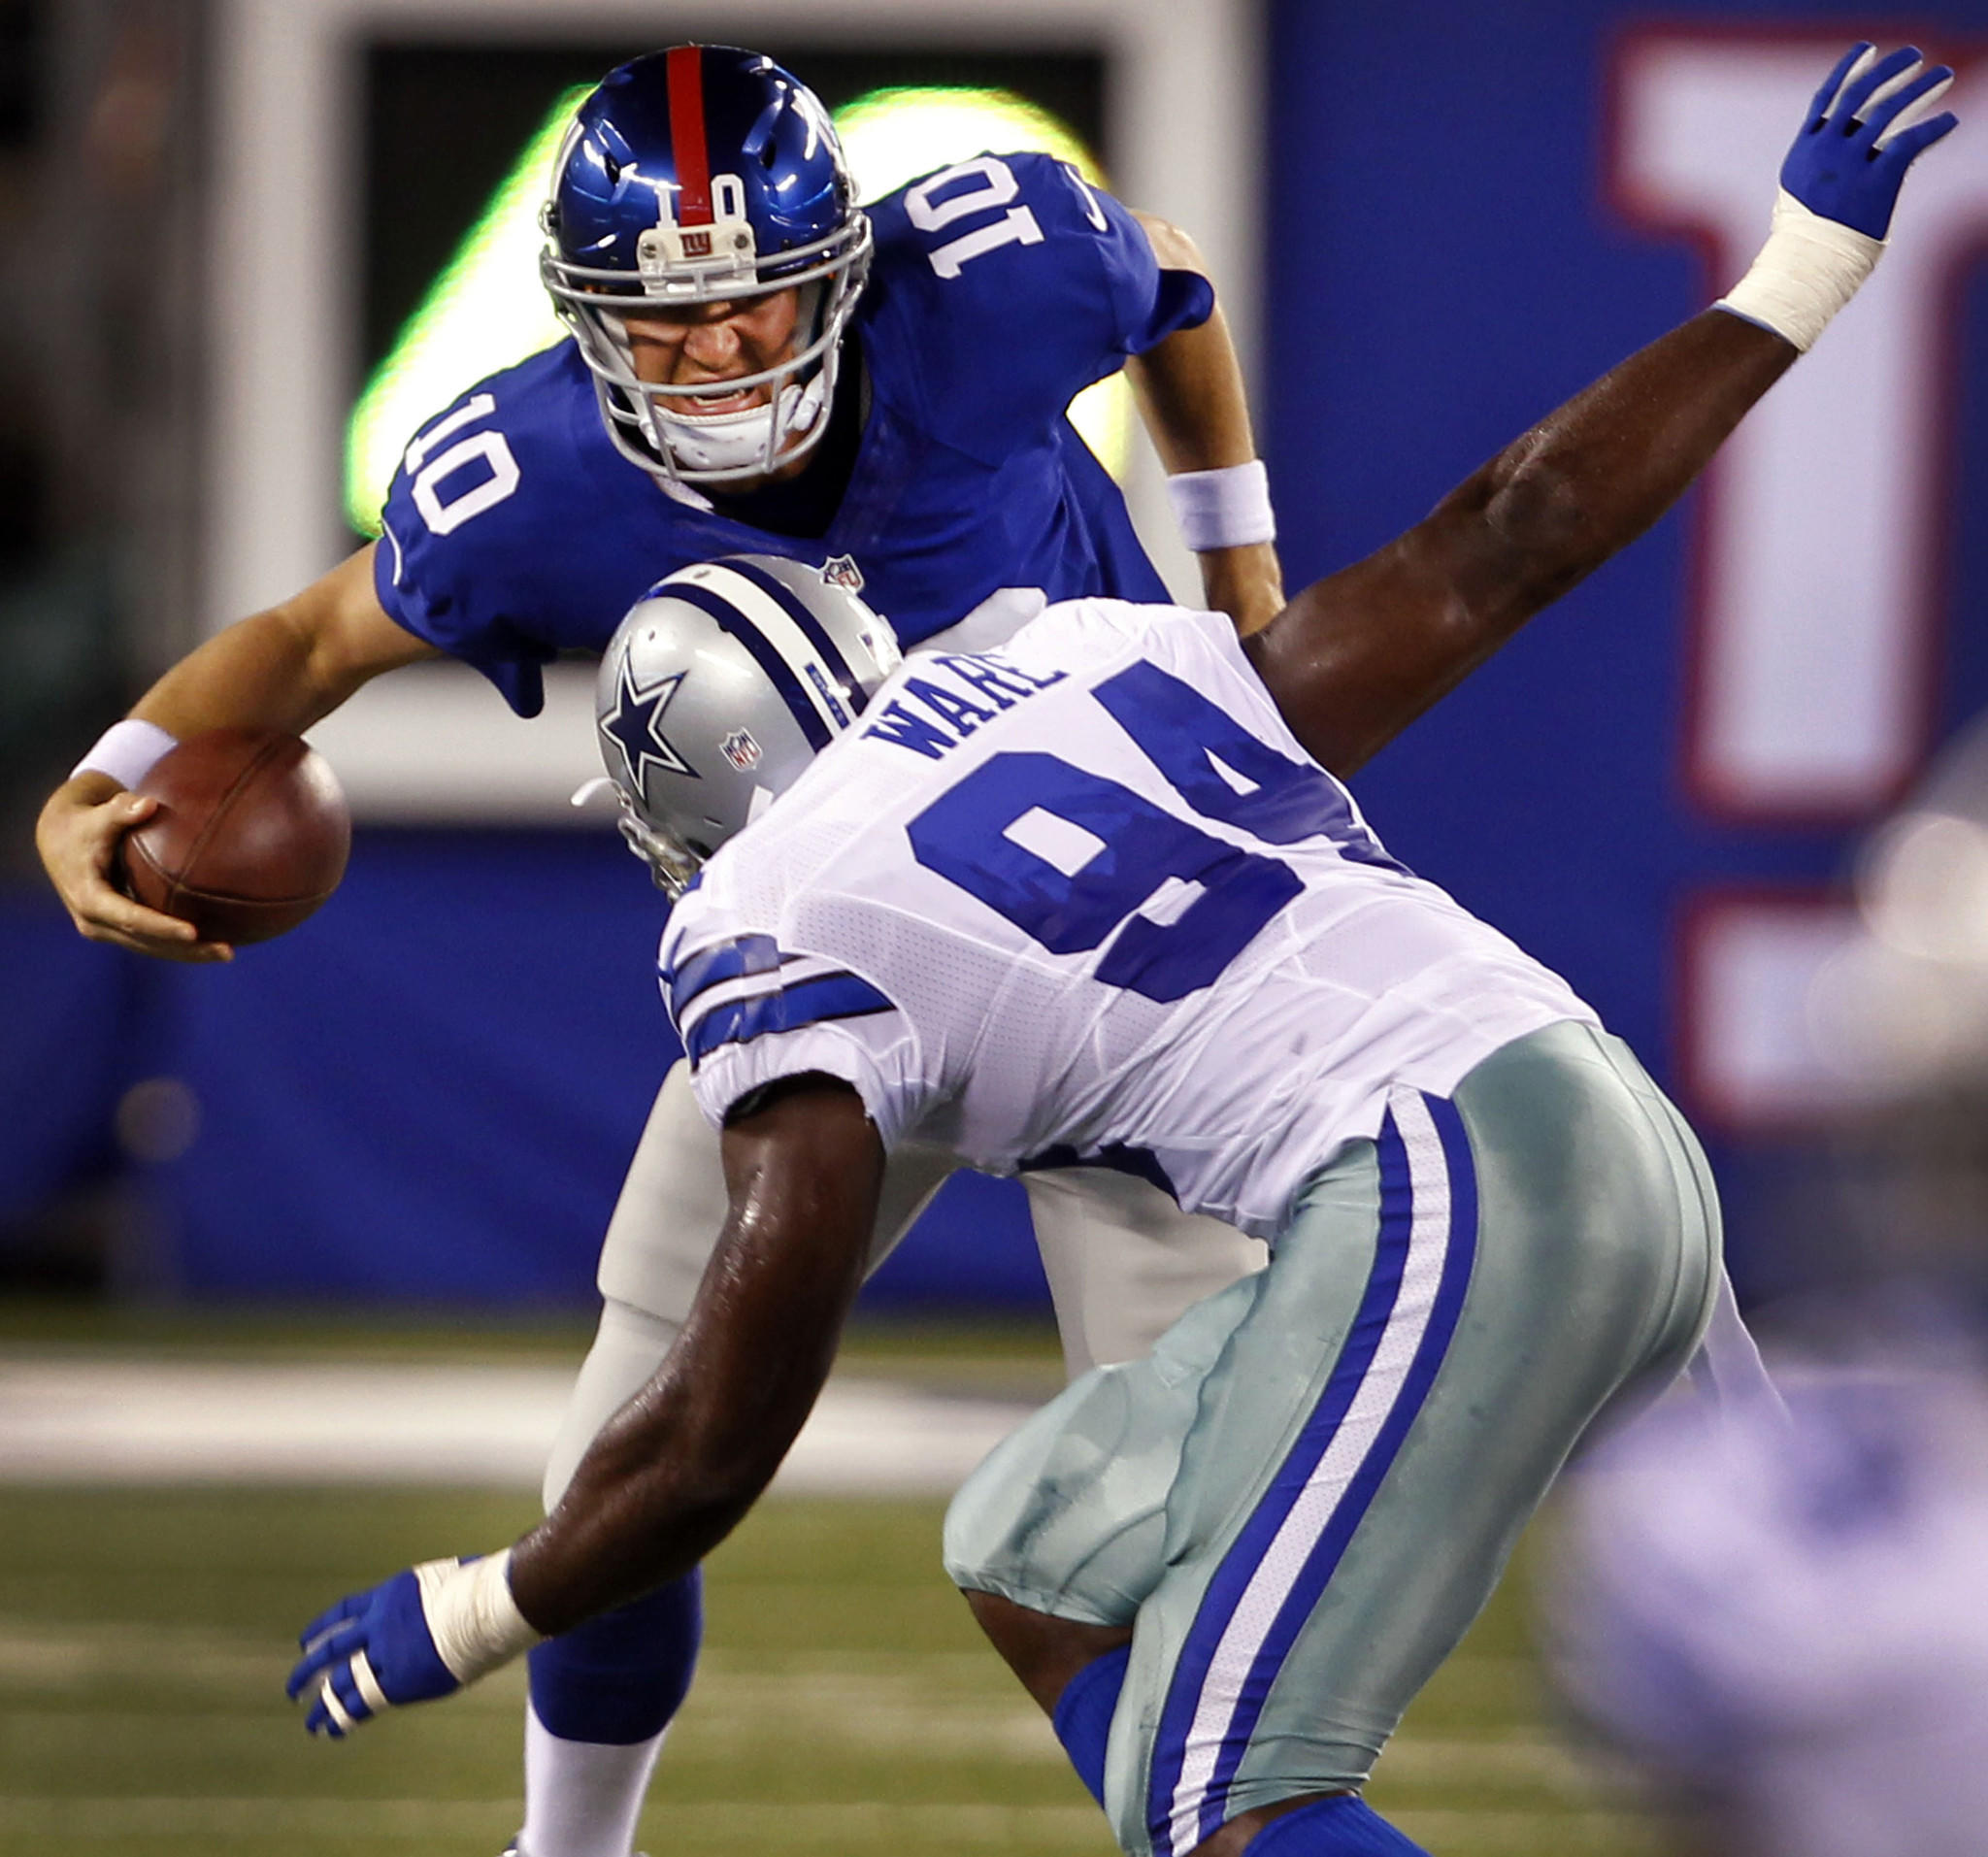 Dallas Cowboys linebacker DeMarcus Ware closes in for the sack on New York Giants quarterback Eli Manning.